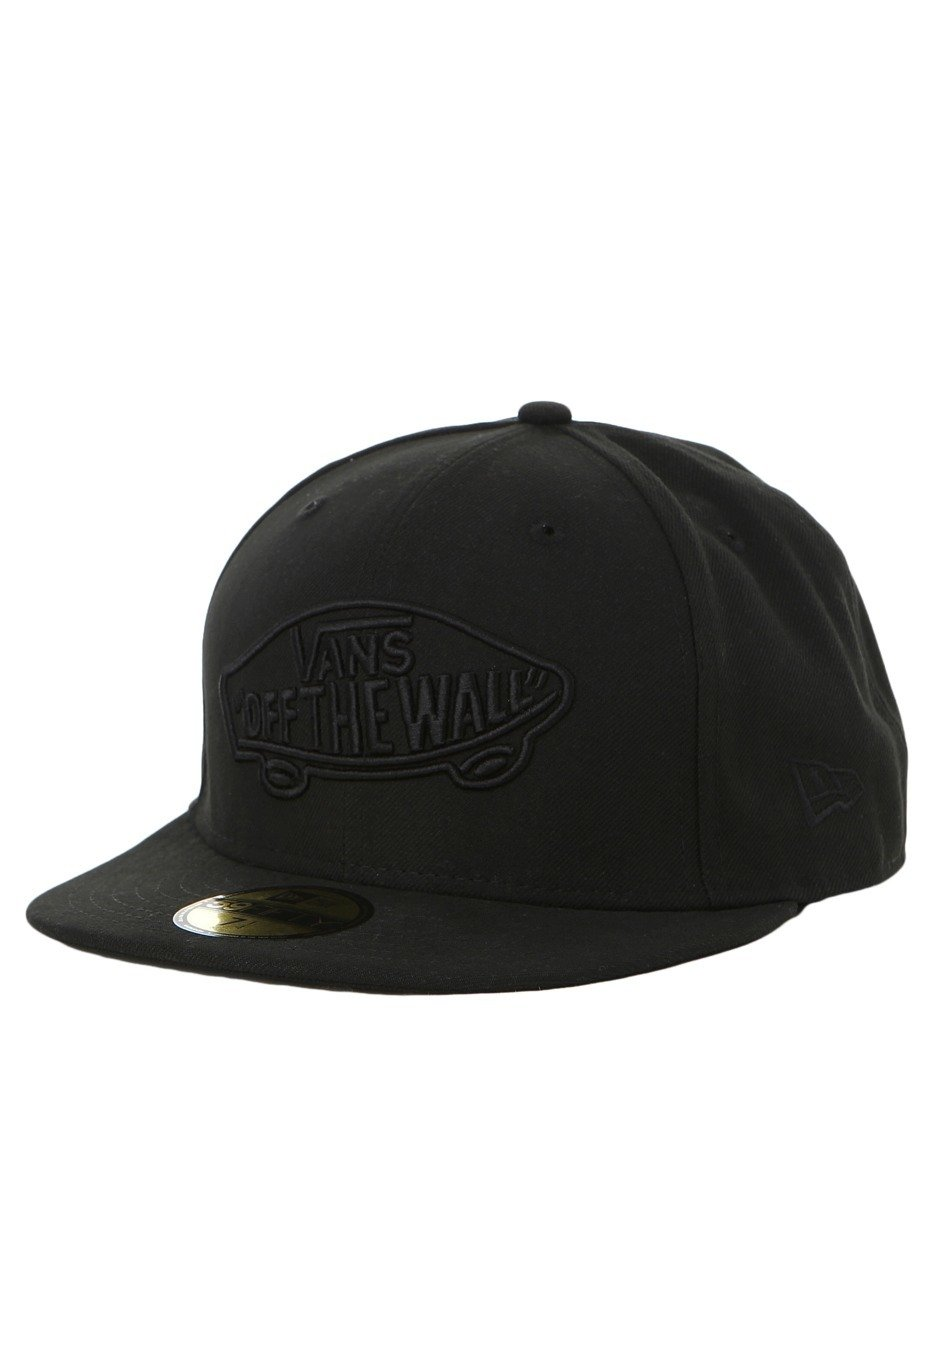 new era vans cap